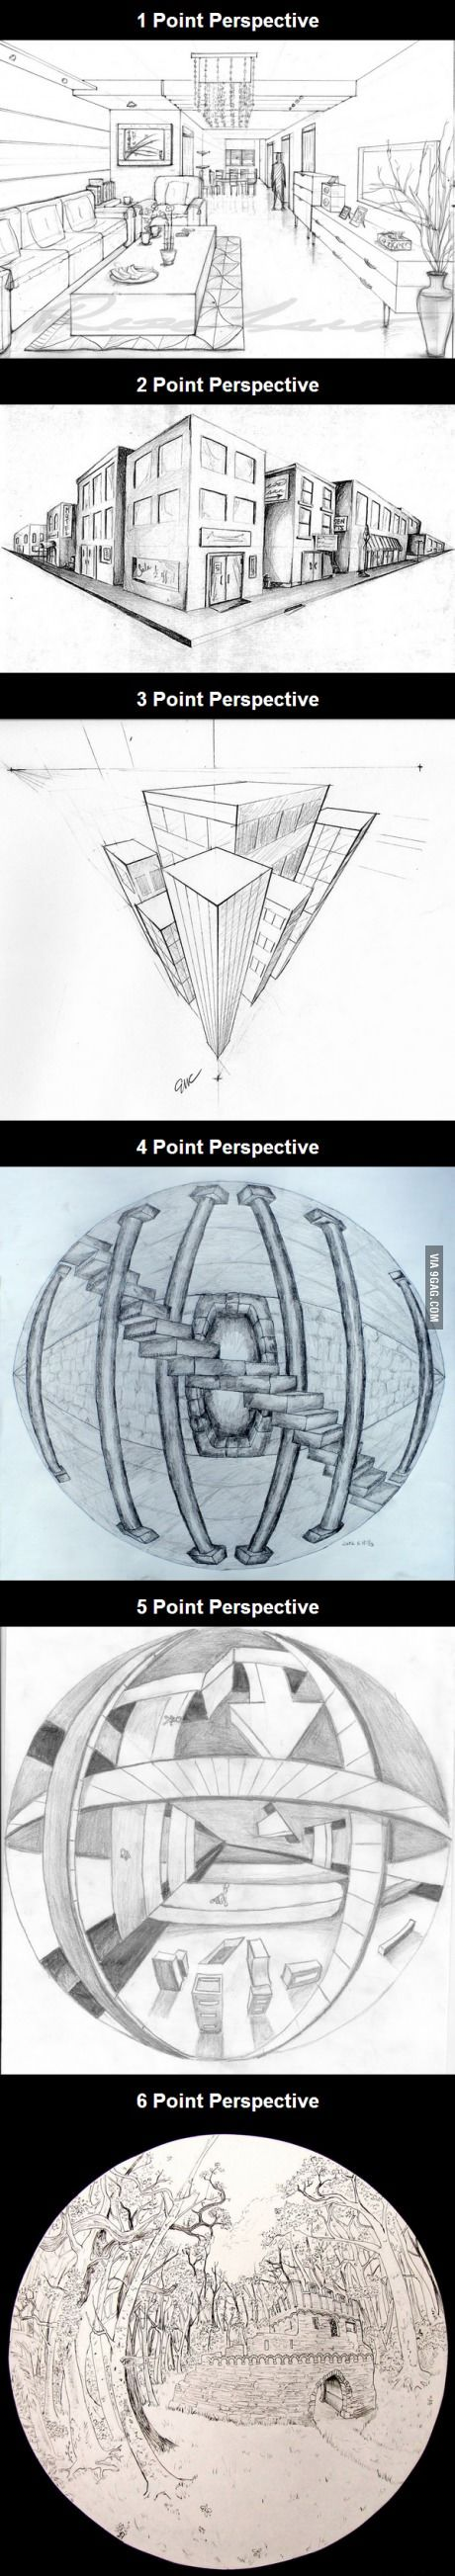 93 best Perspective drawing images on Pinterest | Perspective ...